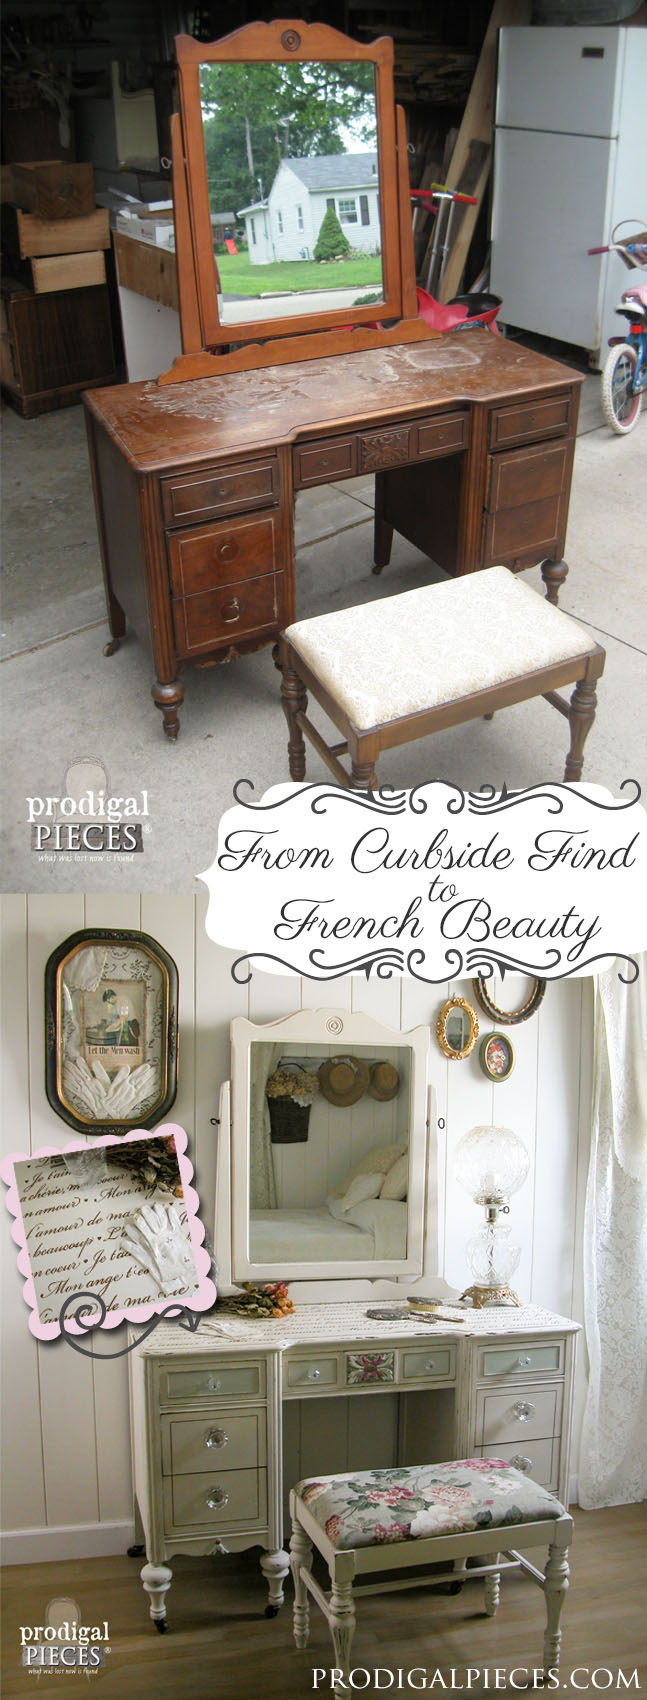 Curbside Vanity is Renewed with Fresh Look and French Script Stencil by Prodigal Pieces | prodigalpieces.com